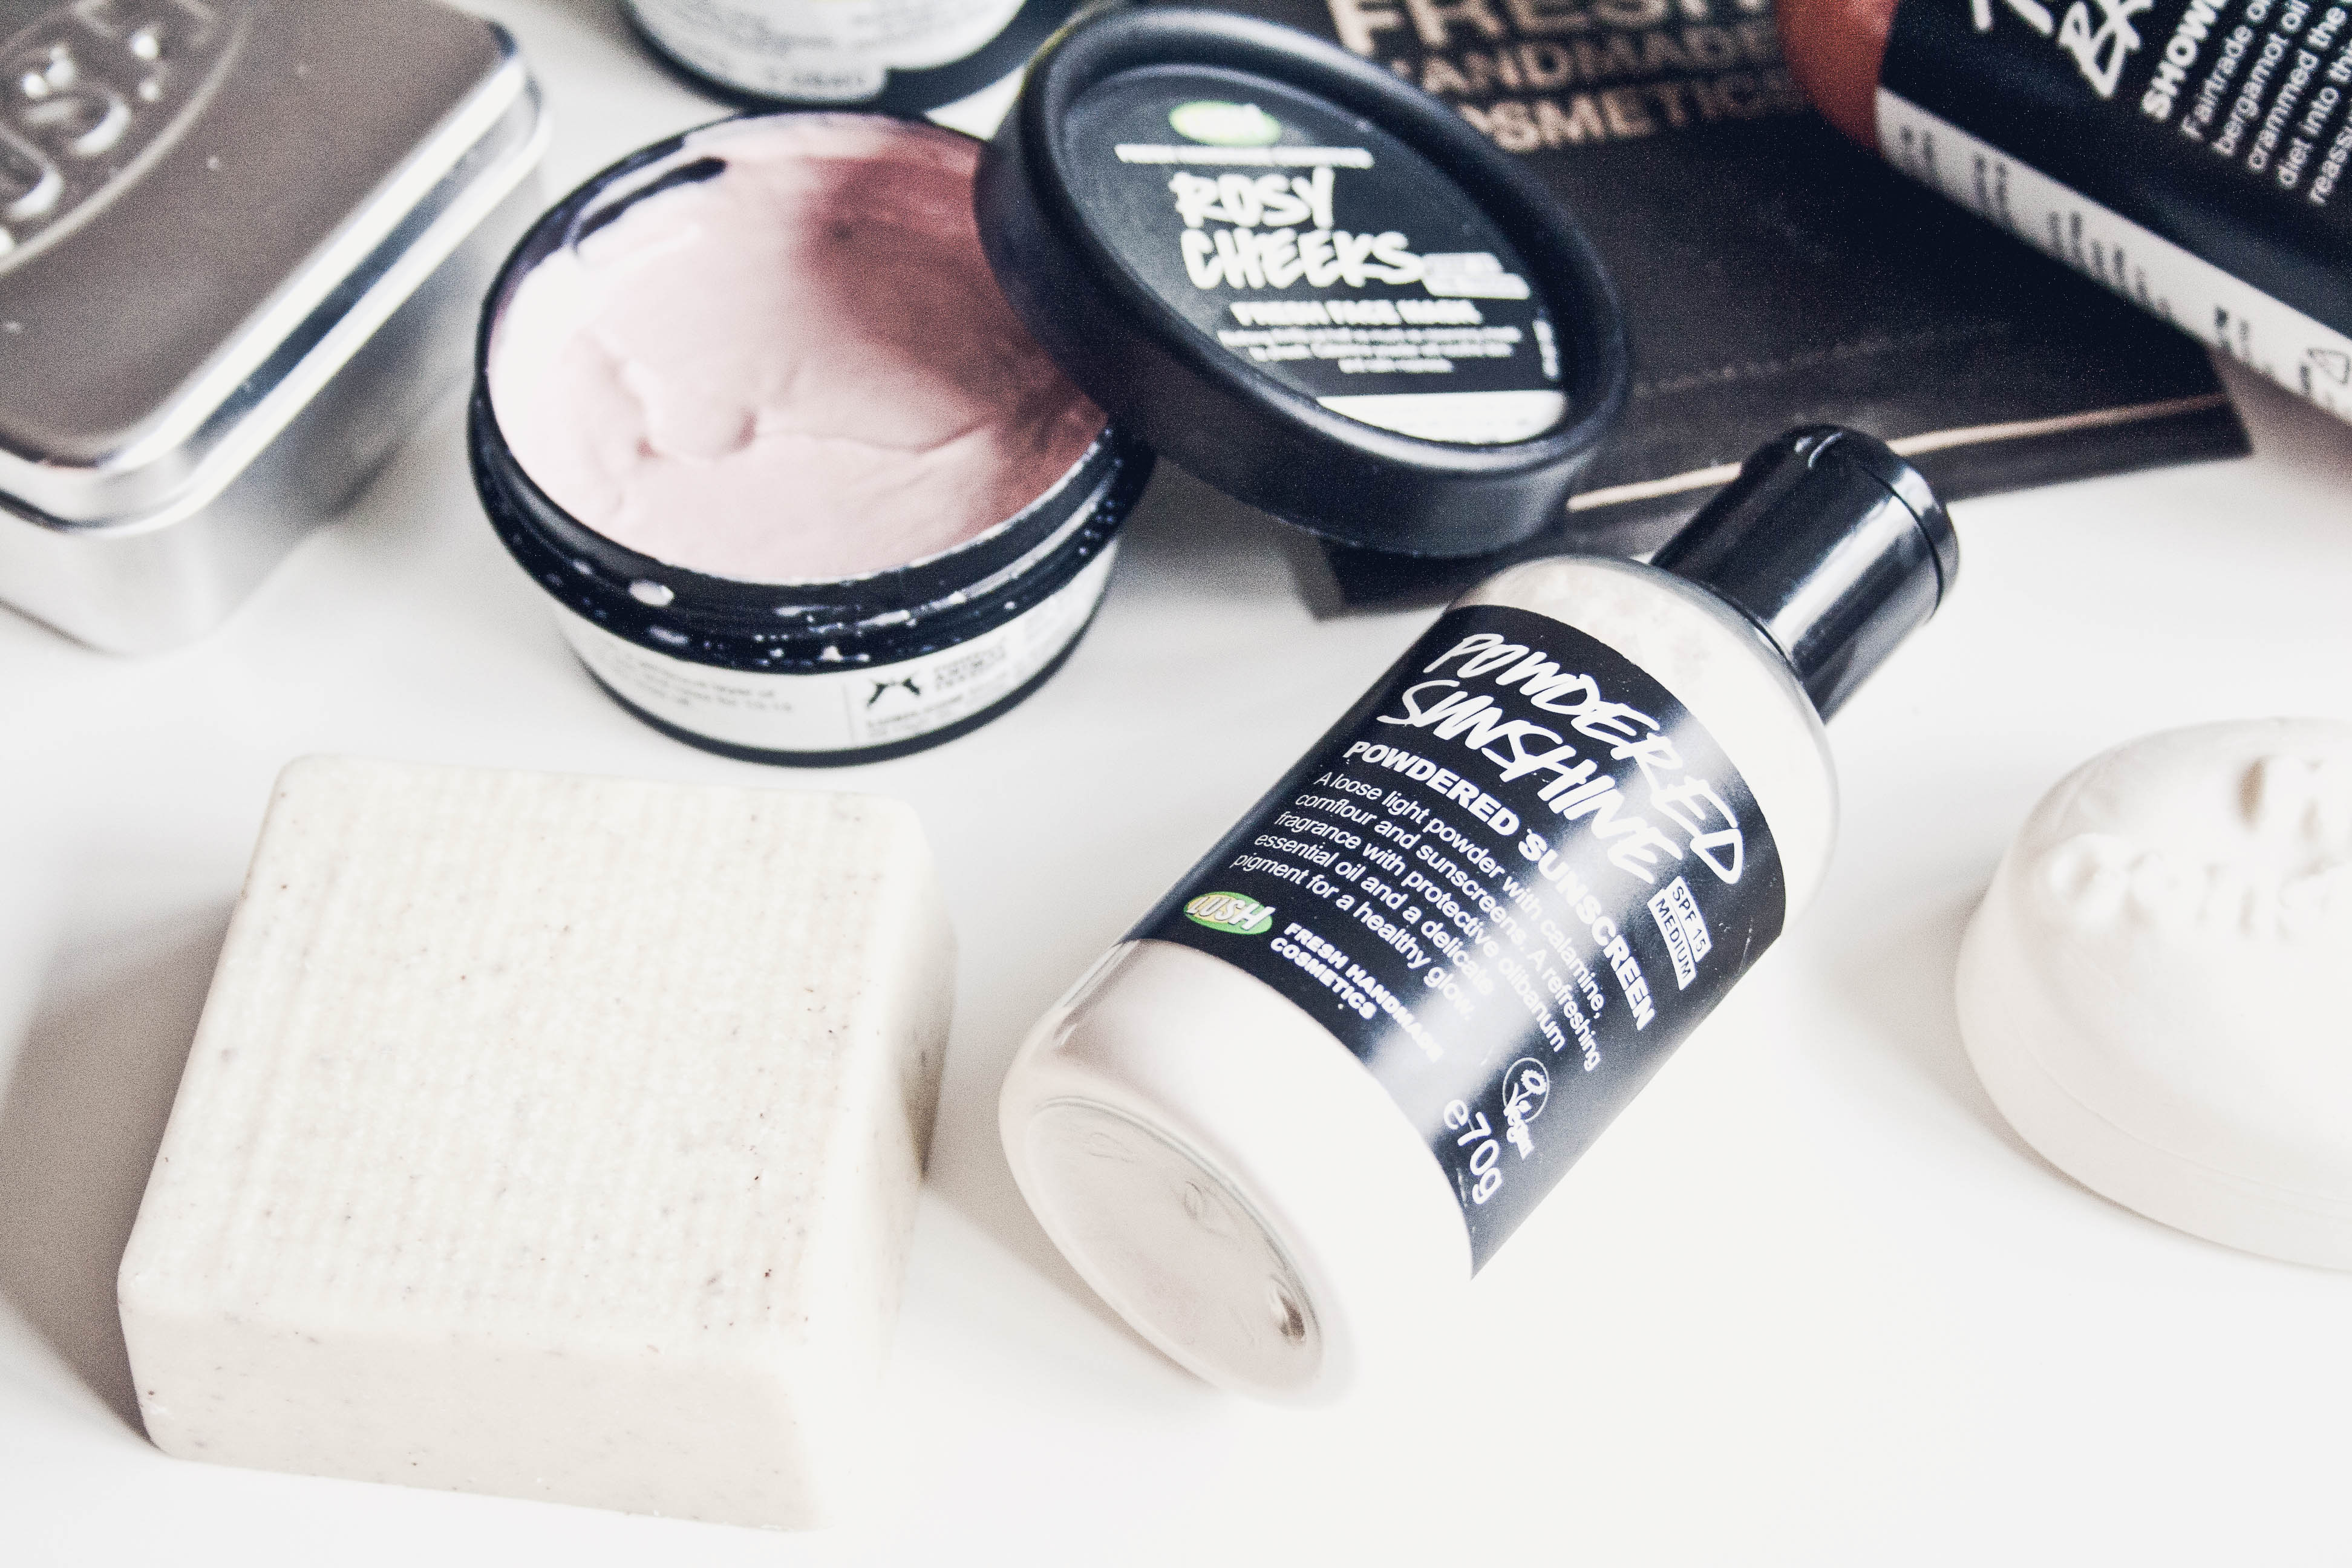 lush cosmetics review by bulgarian beauty blogger quite a looker summer products www.quitealooker.com lush bulgaria